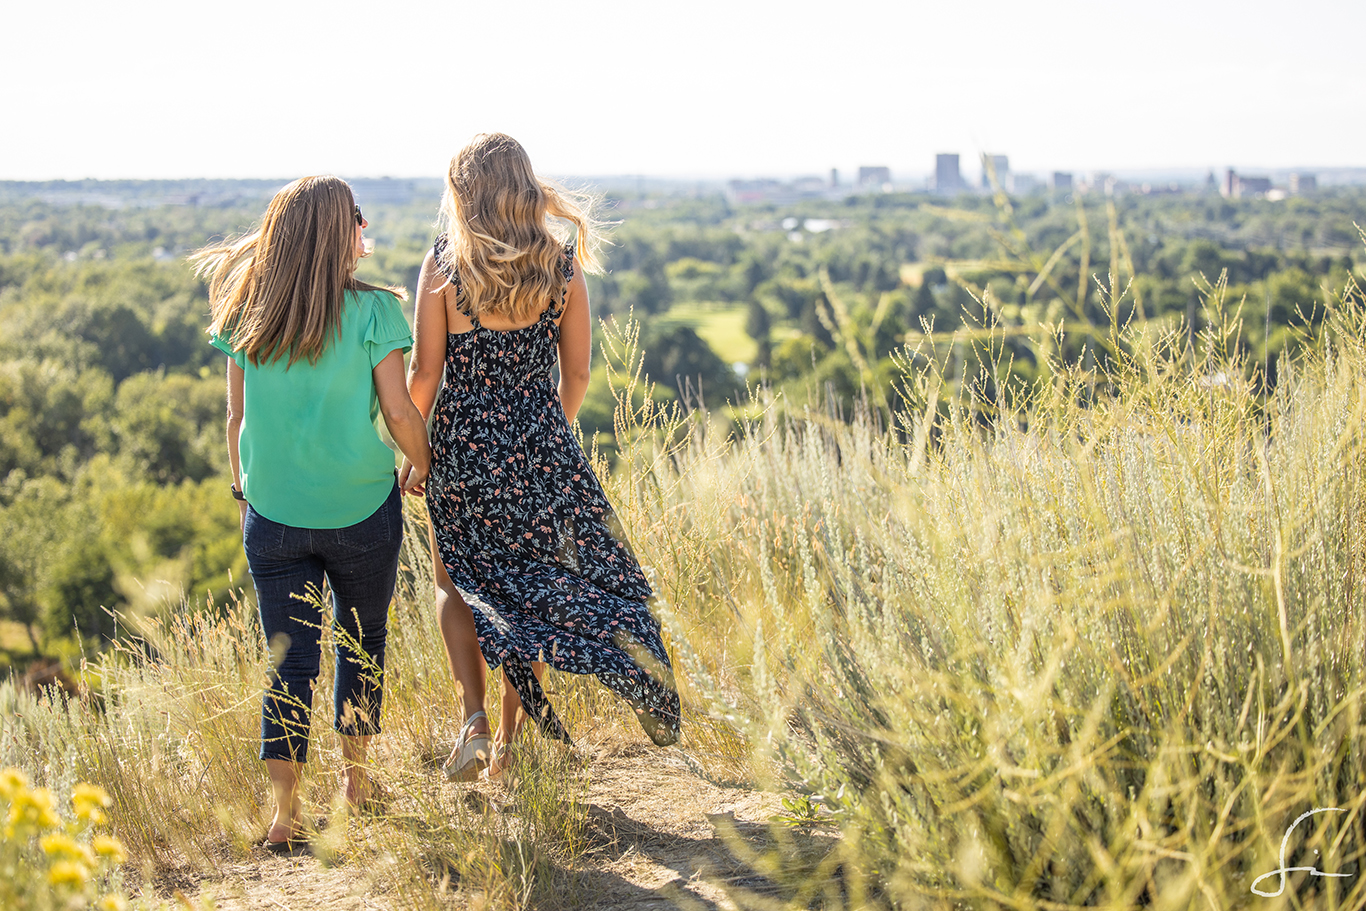 A mother and daughter holding hands, walking away from the camera towards the city